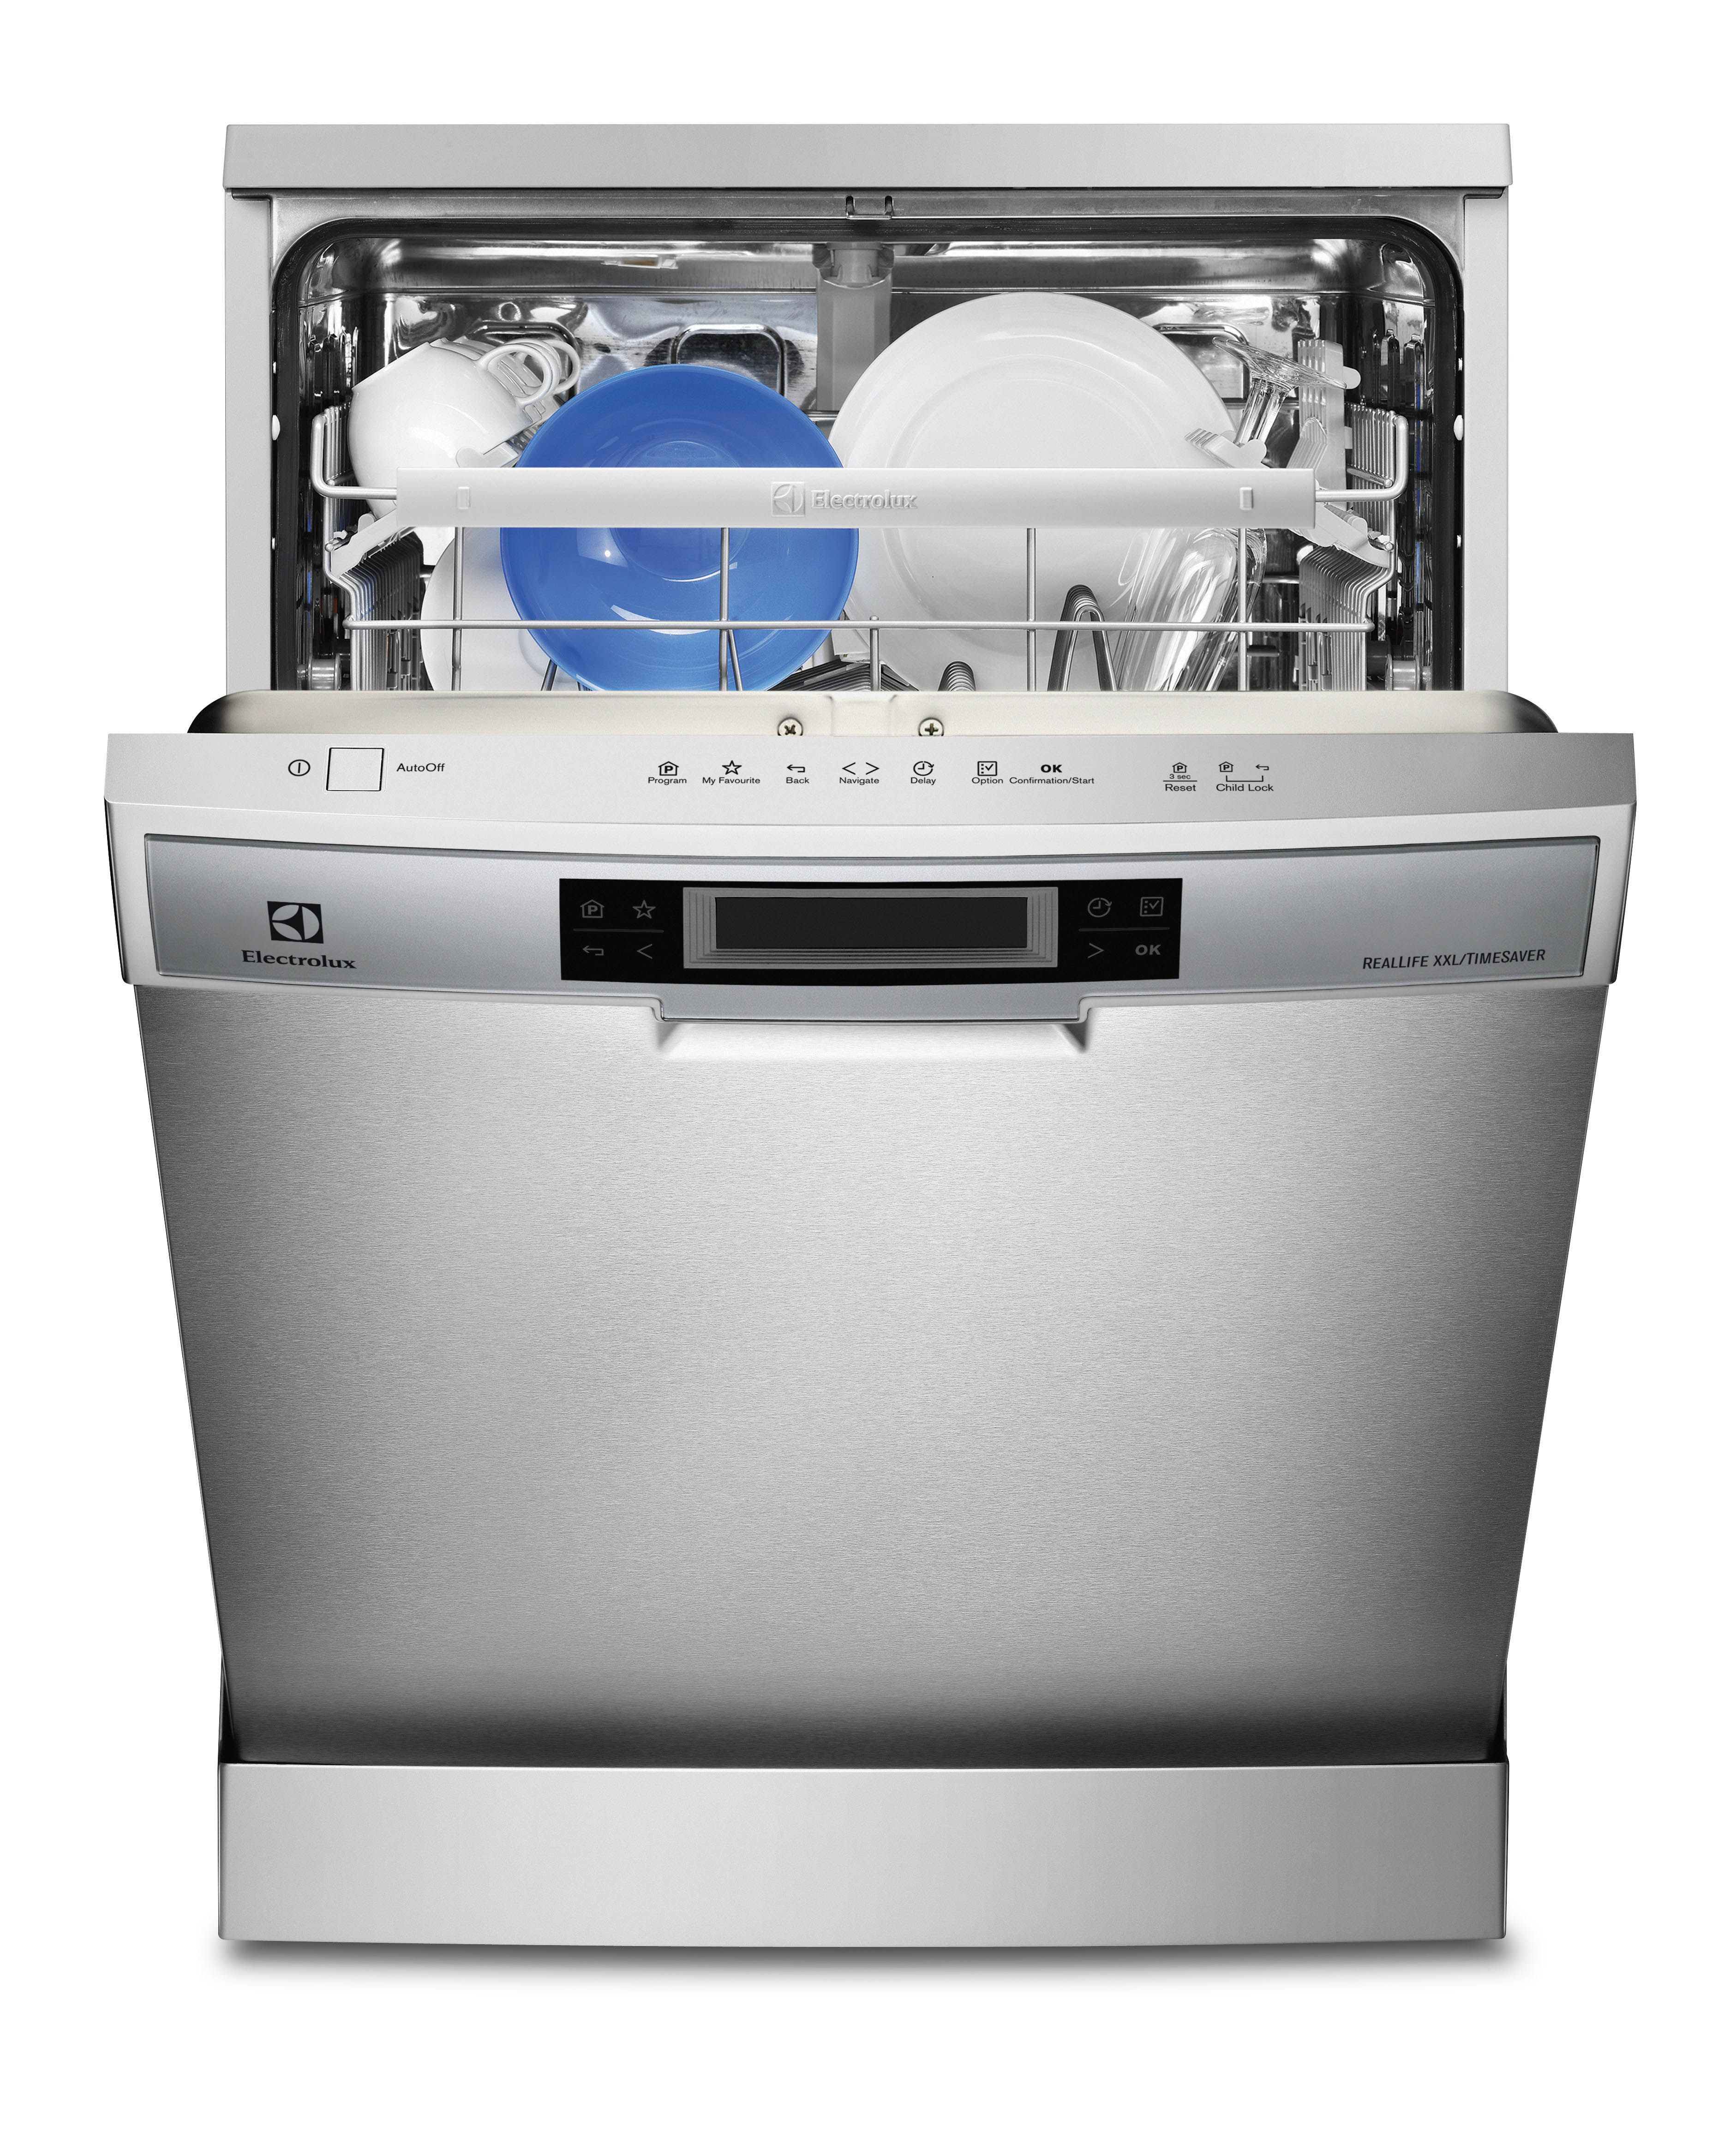 Detailed Instructions On How To Fix The Error Code F01 F70 F28 F2 F22 F31 F1 F06 In The Whirlpoo Error Code Refrigeration And Air Conditioning Whirlpool